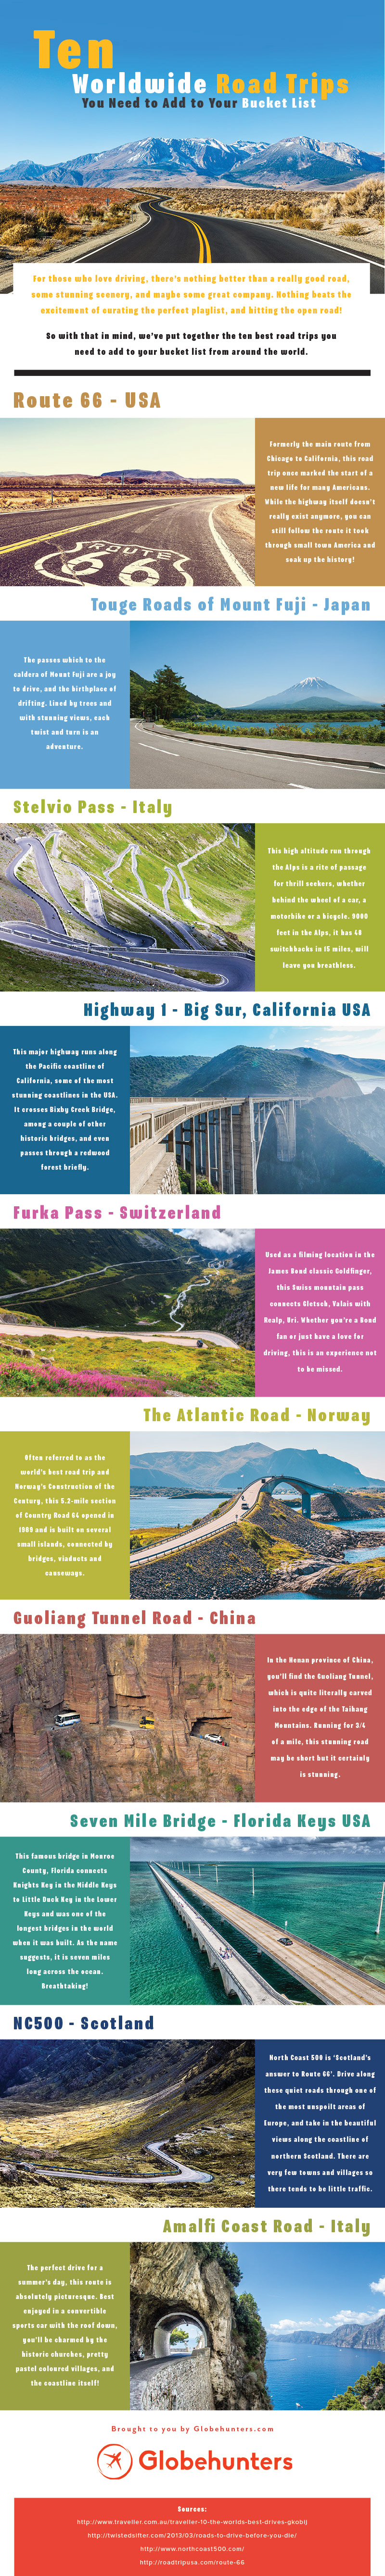 10 Worldwide Road Trips You Need to Add to Your Bucket List [Infographic]